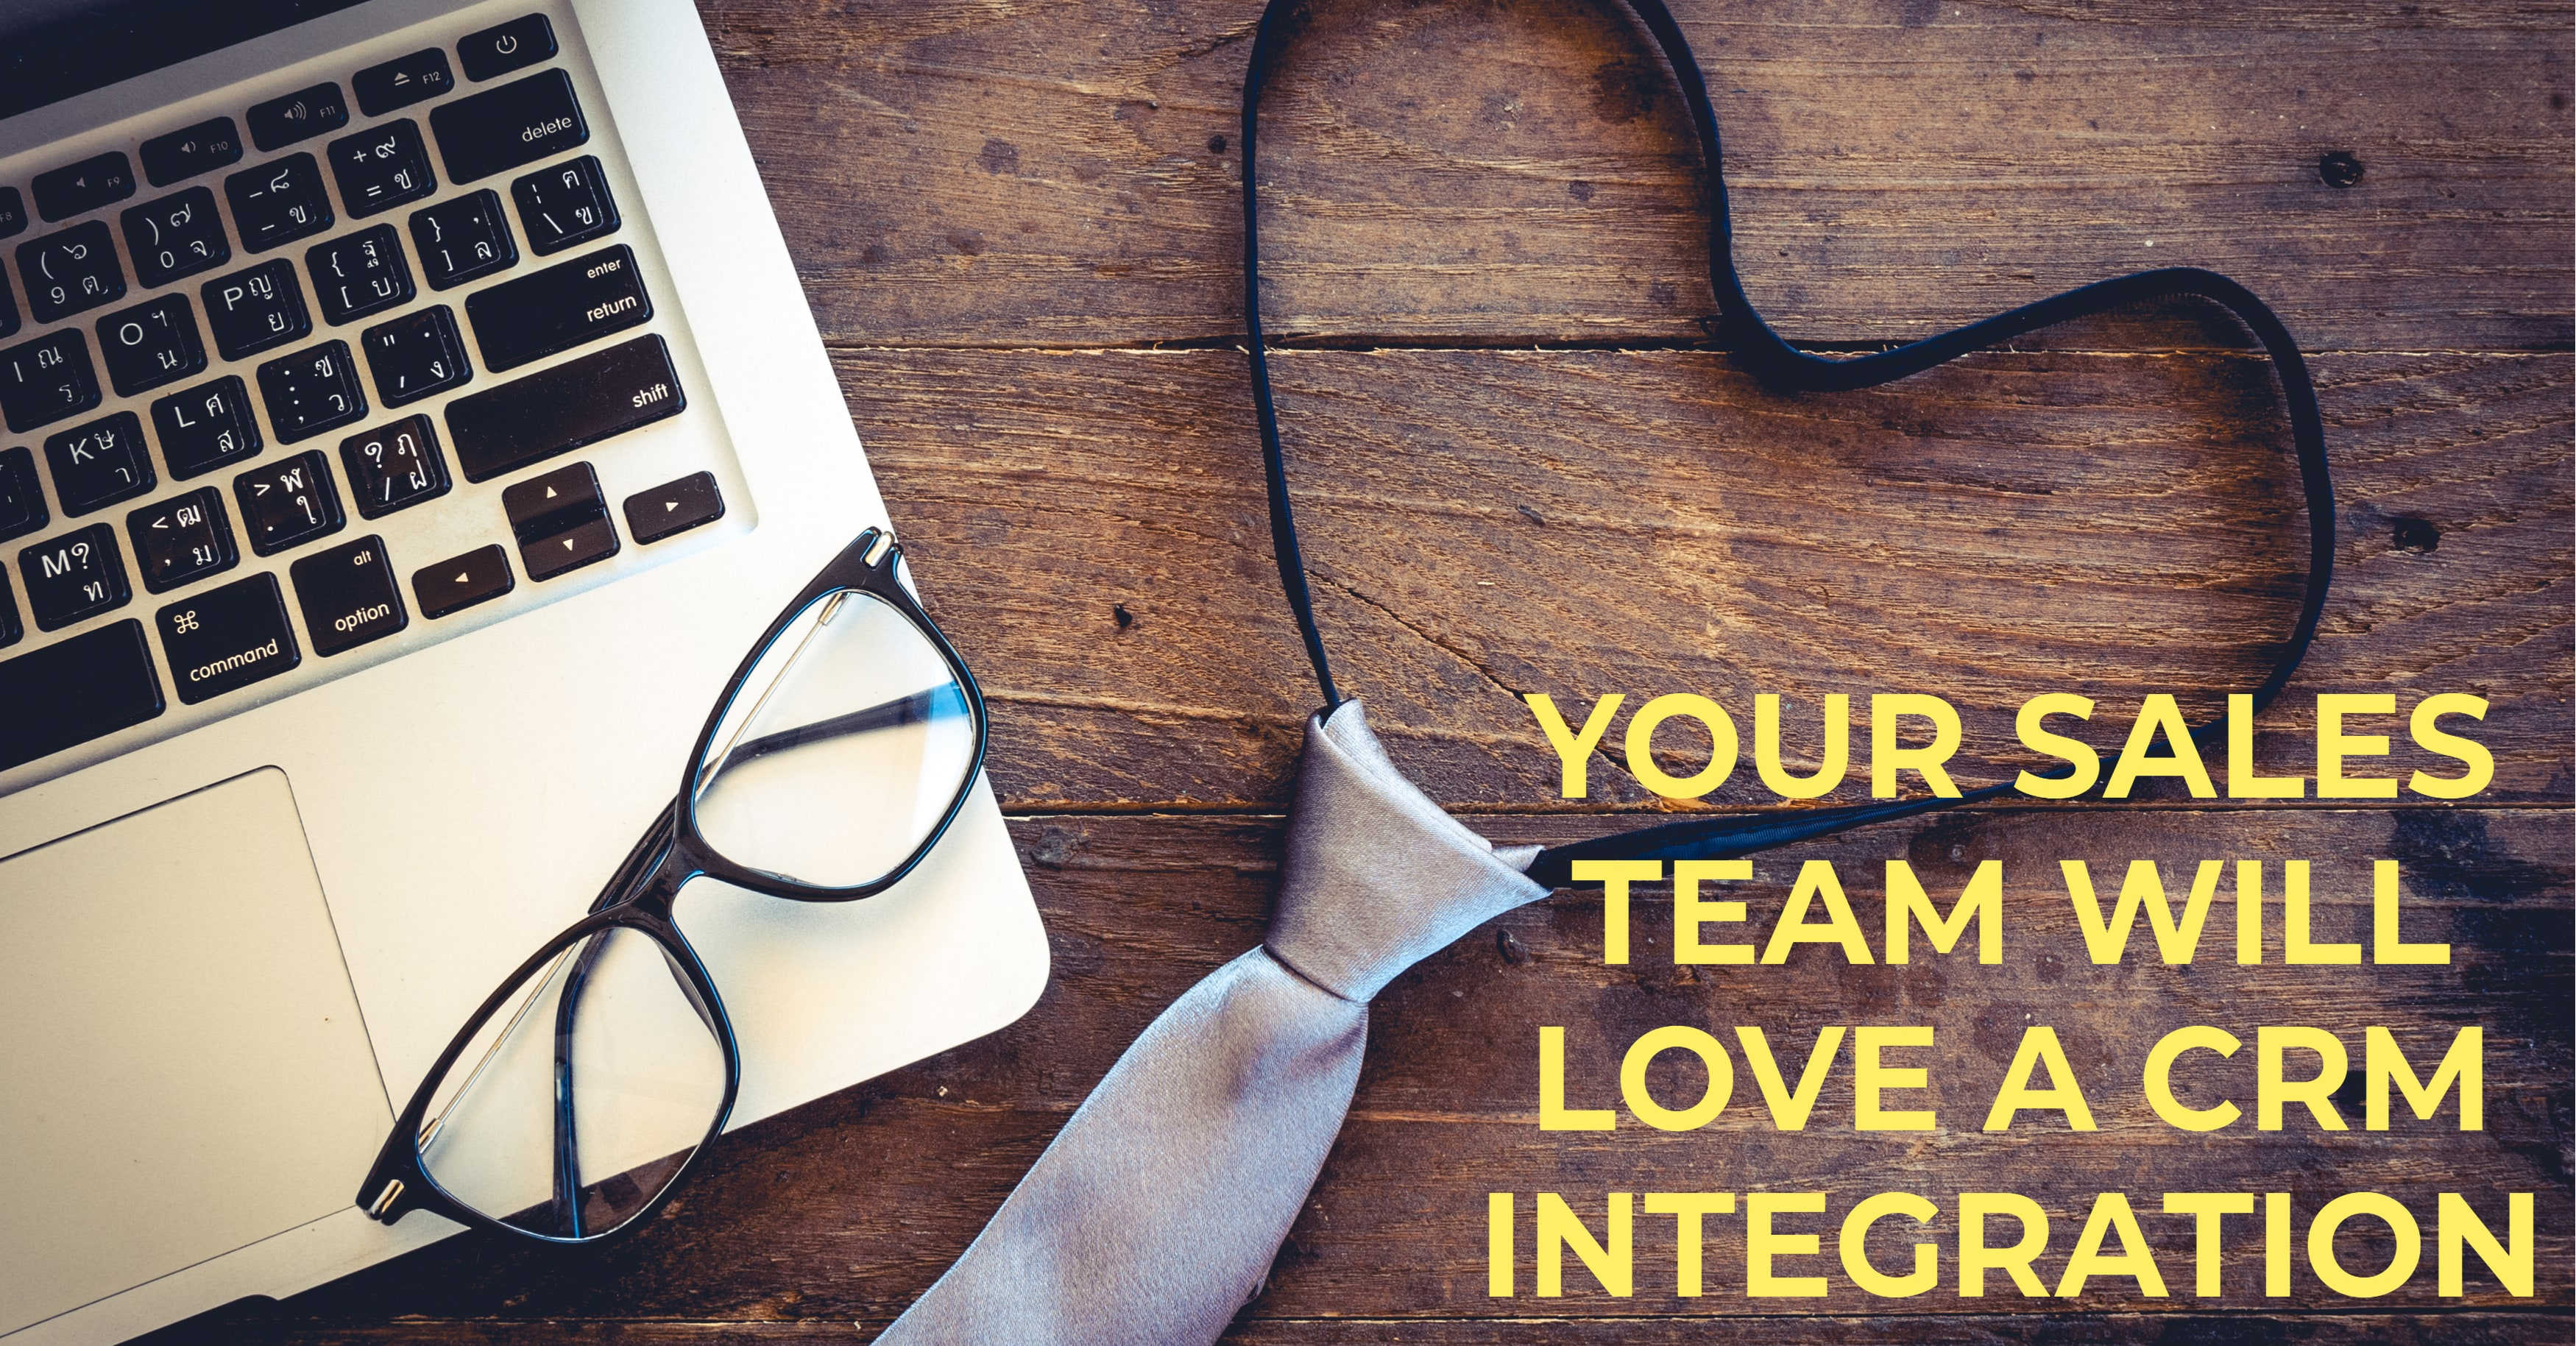 Why Your Sales Team Will Love a CRM Integration